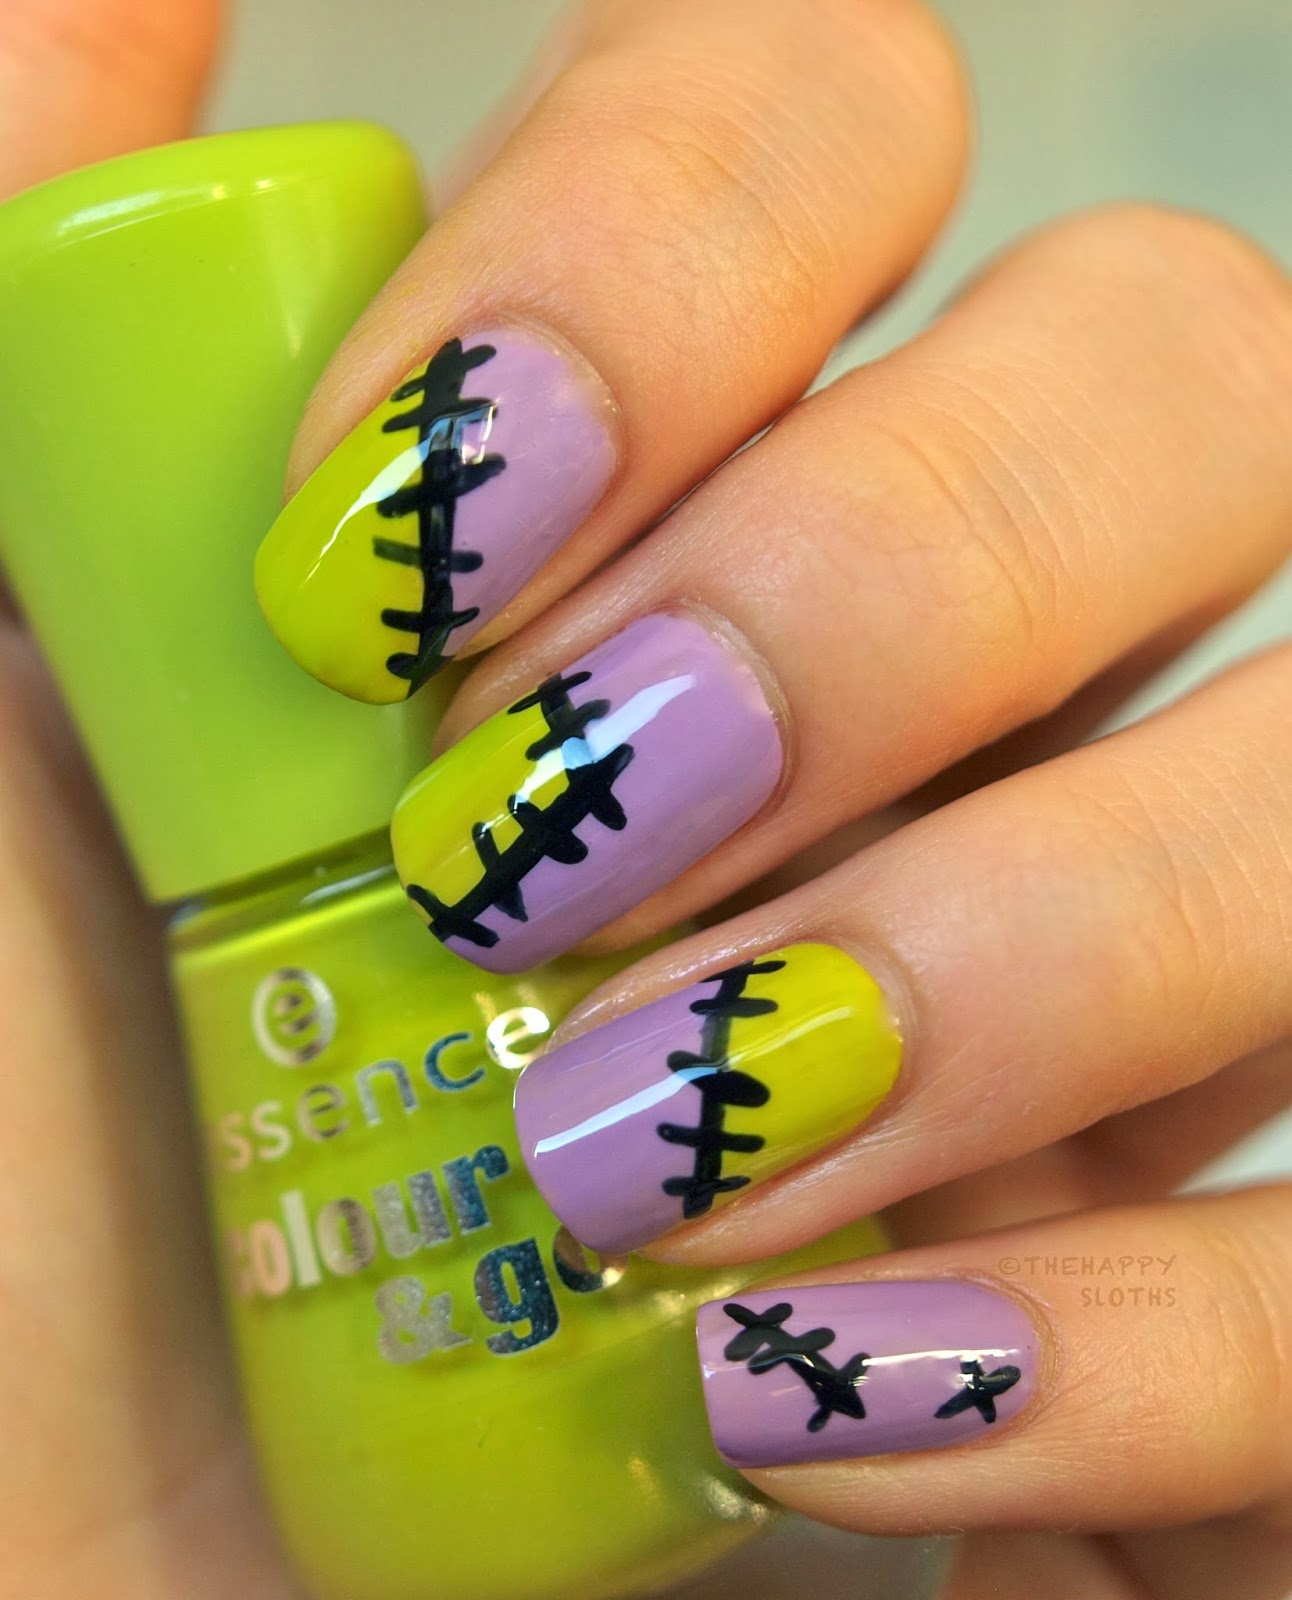 All Patched Up: Halloween Nail Art Design | The Happy ...